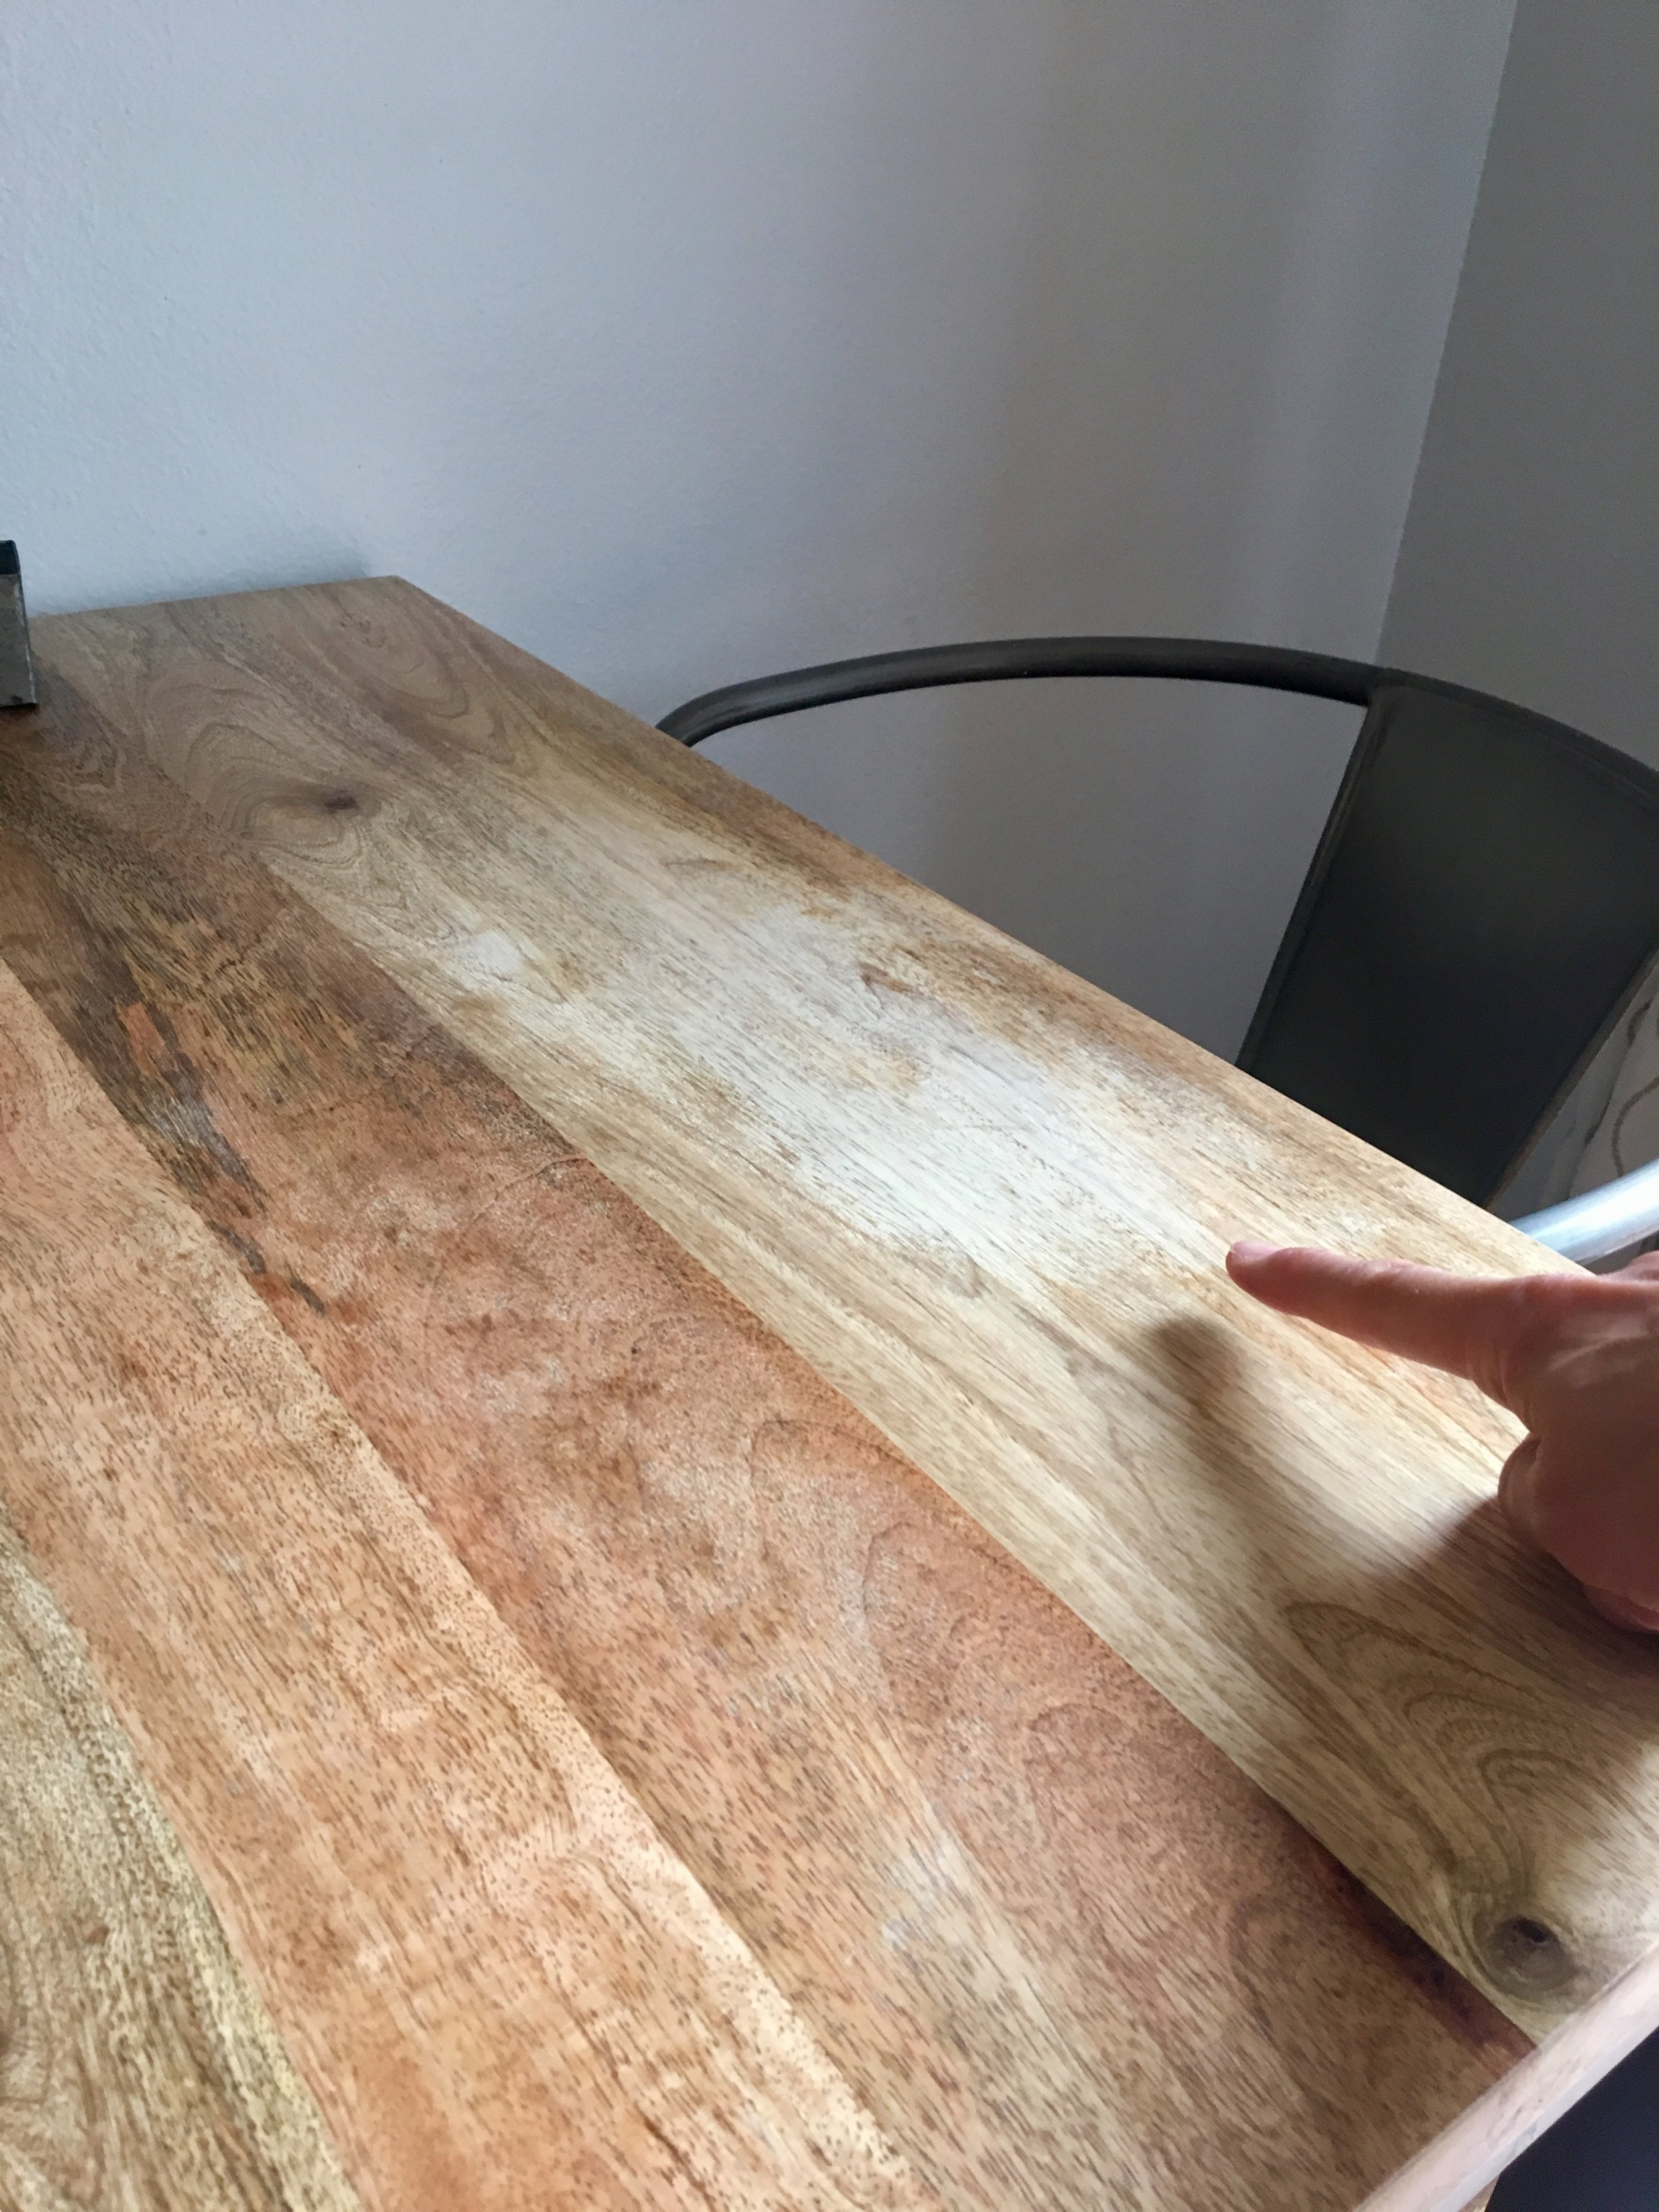 Scratched table.jpg